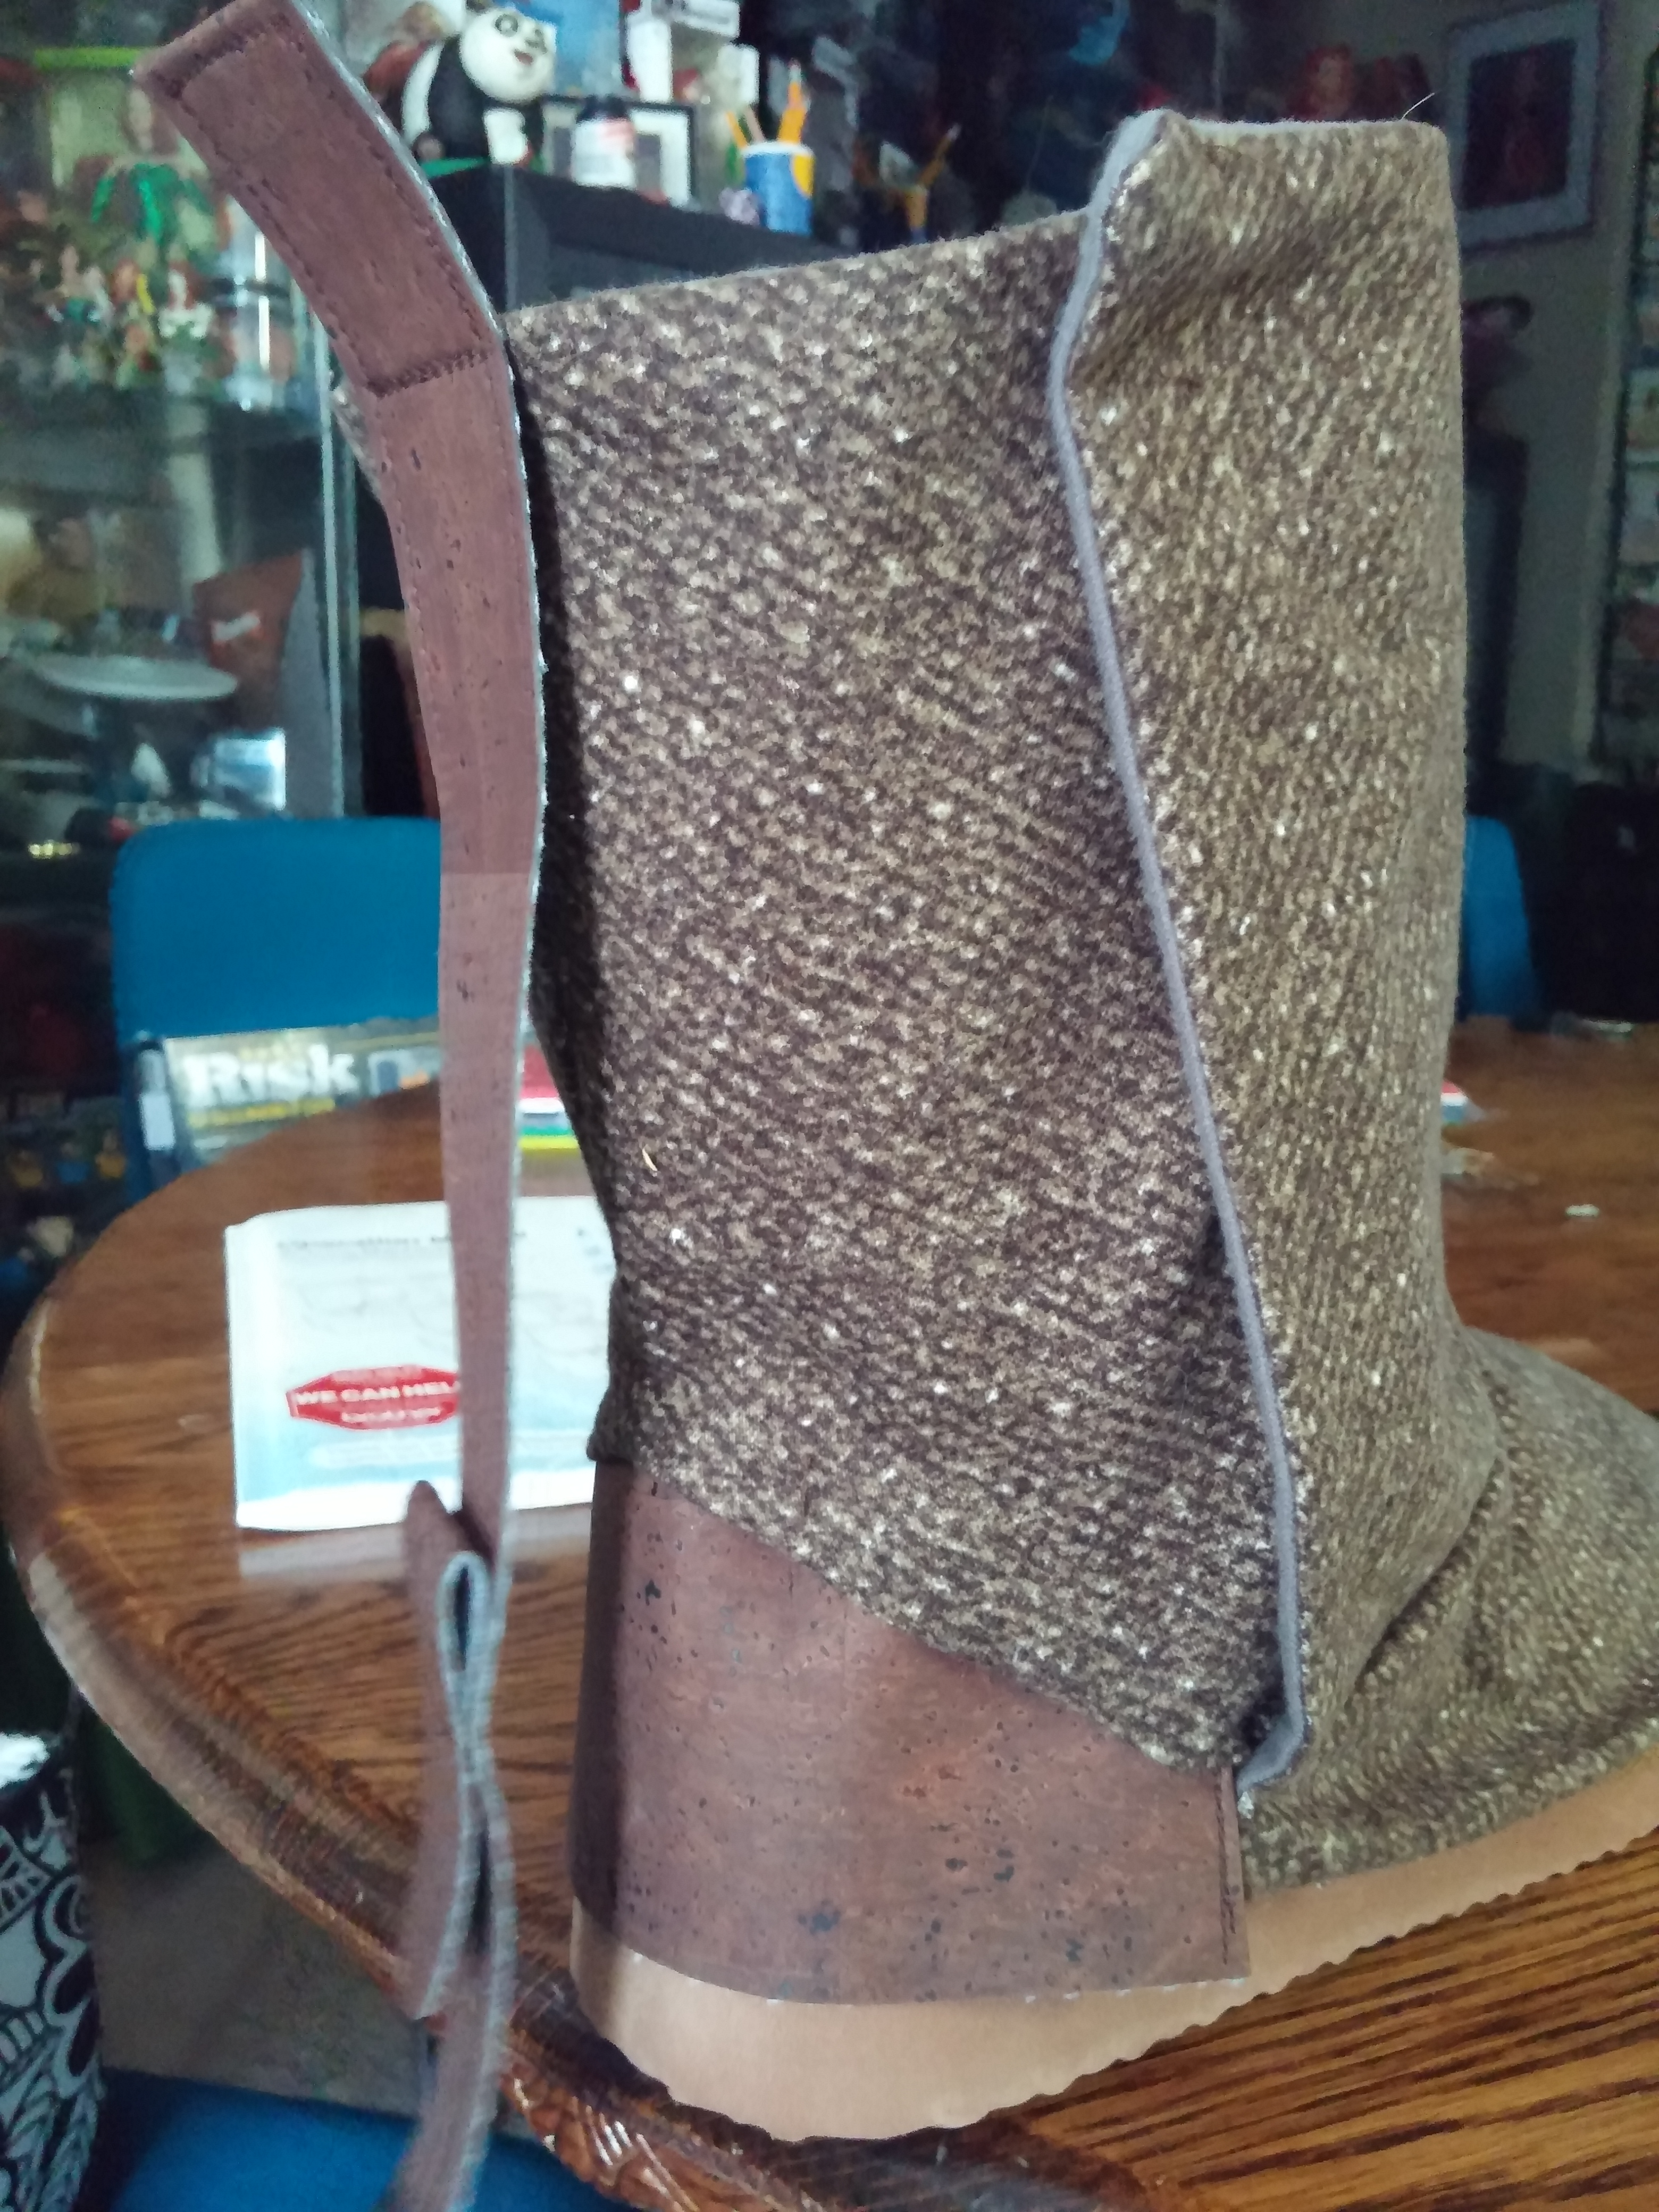 Picture of The Empire Strikes Back or Why I Won't Buy THE Boots From the UK.